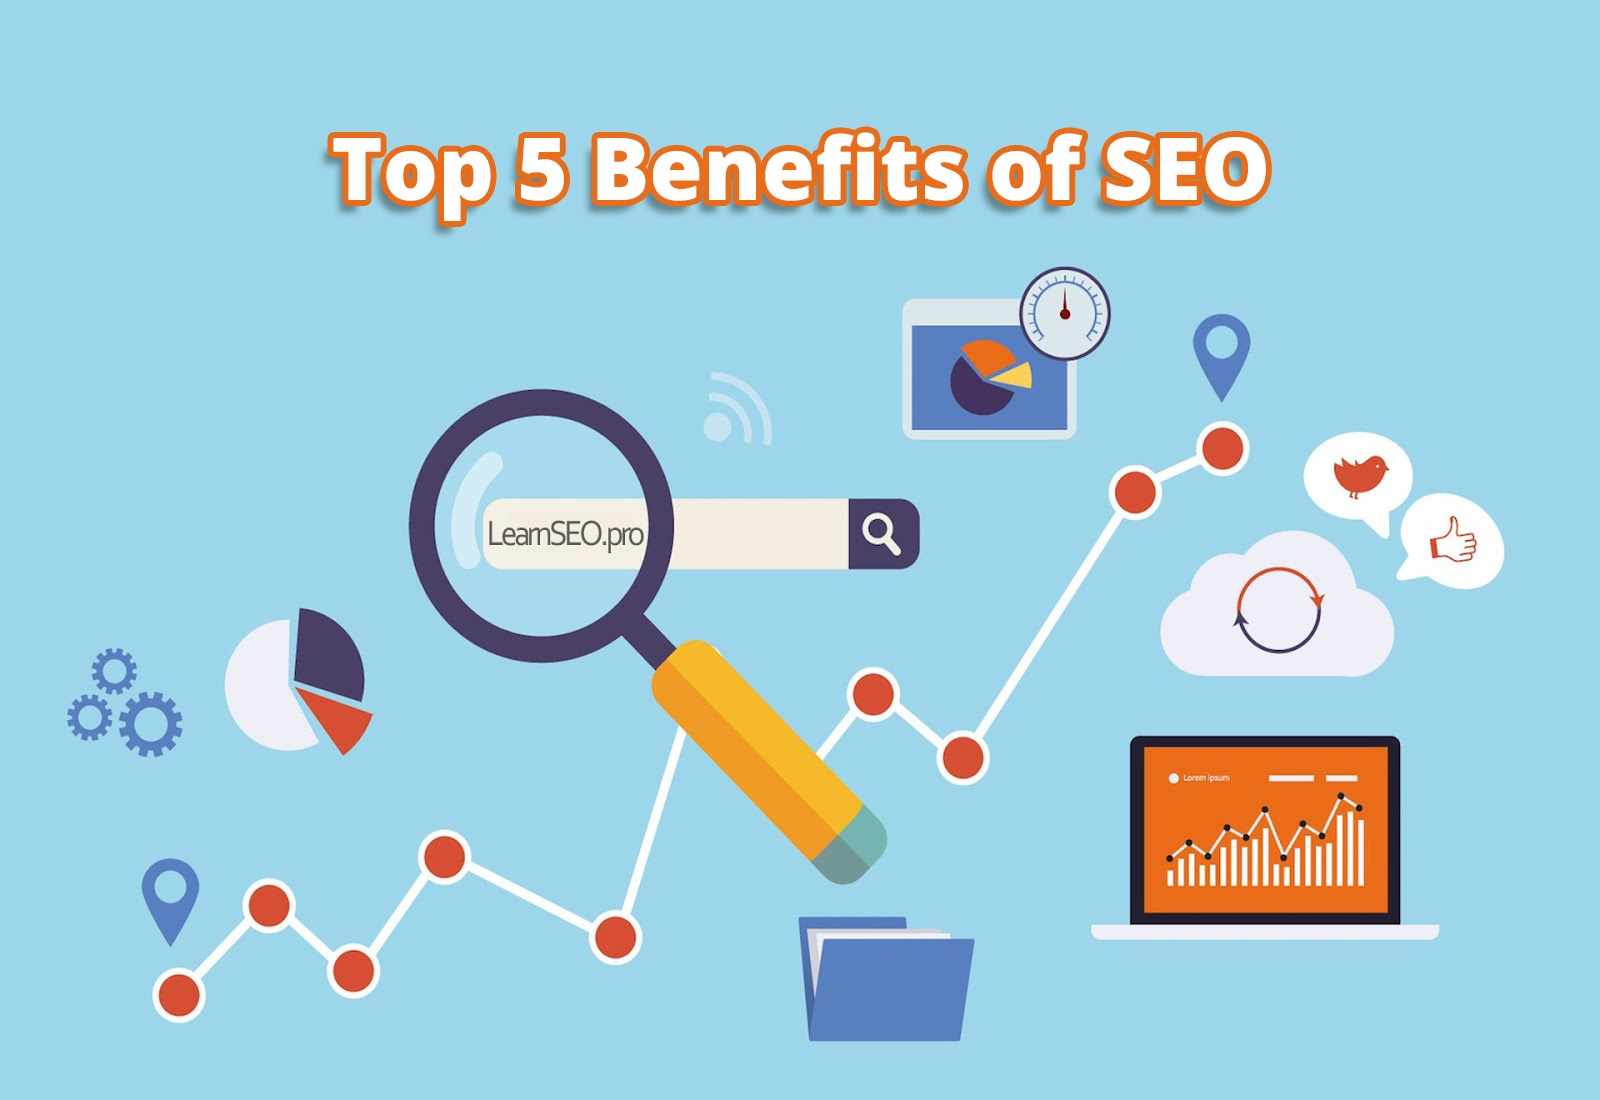 Top 5 Benefits of SEO